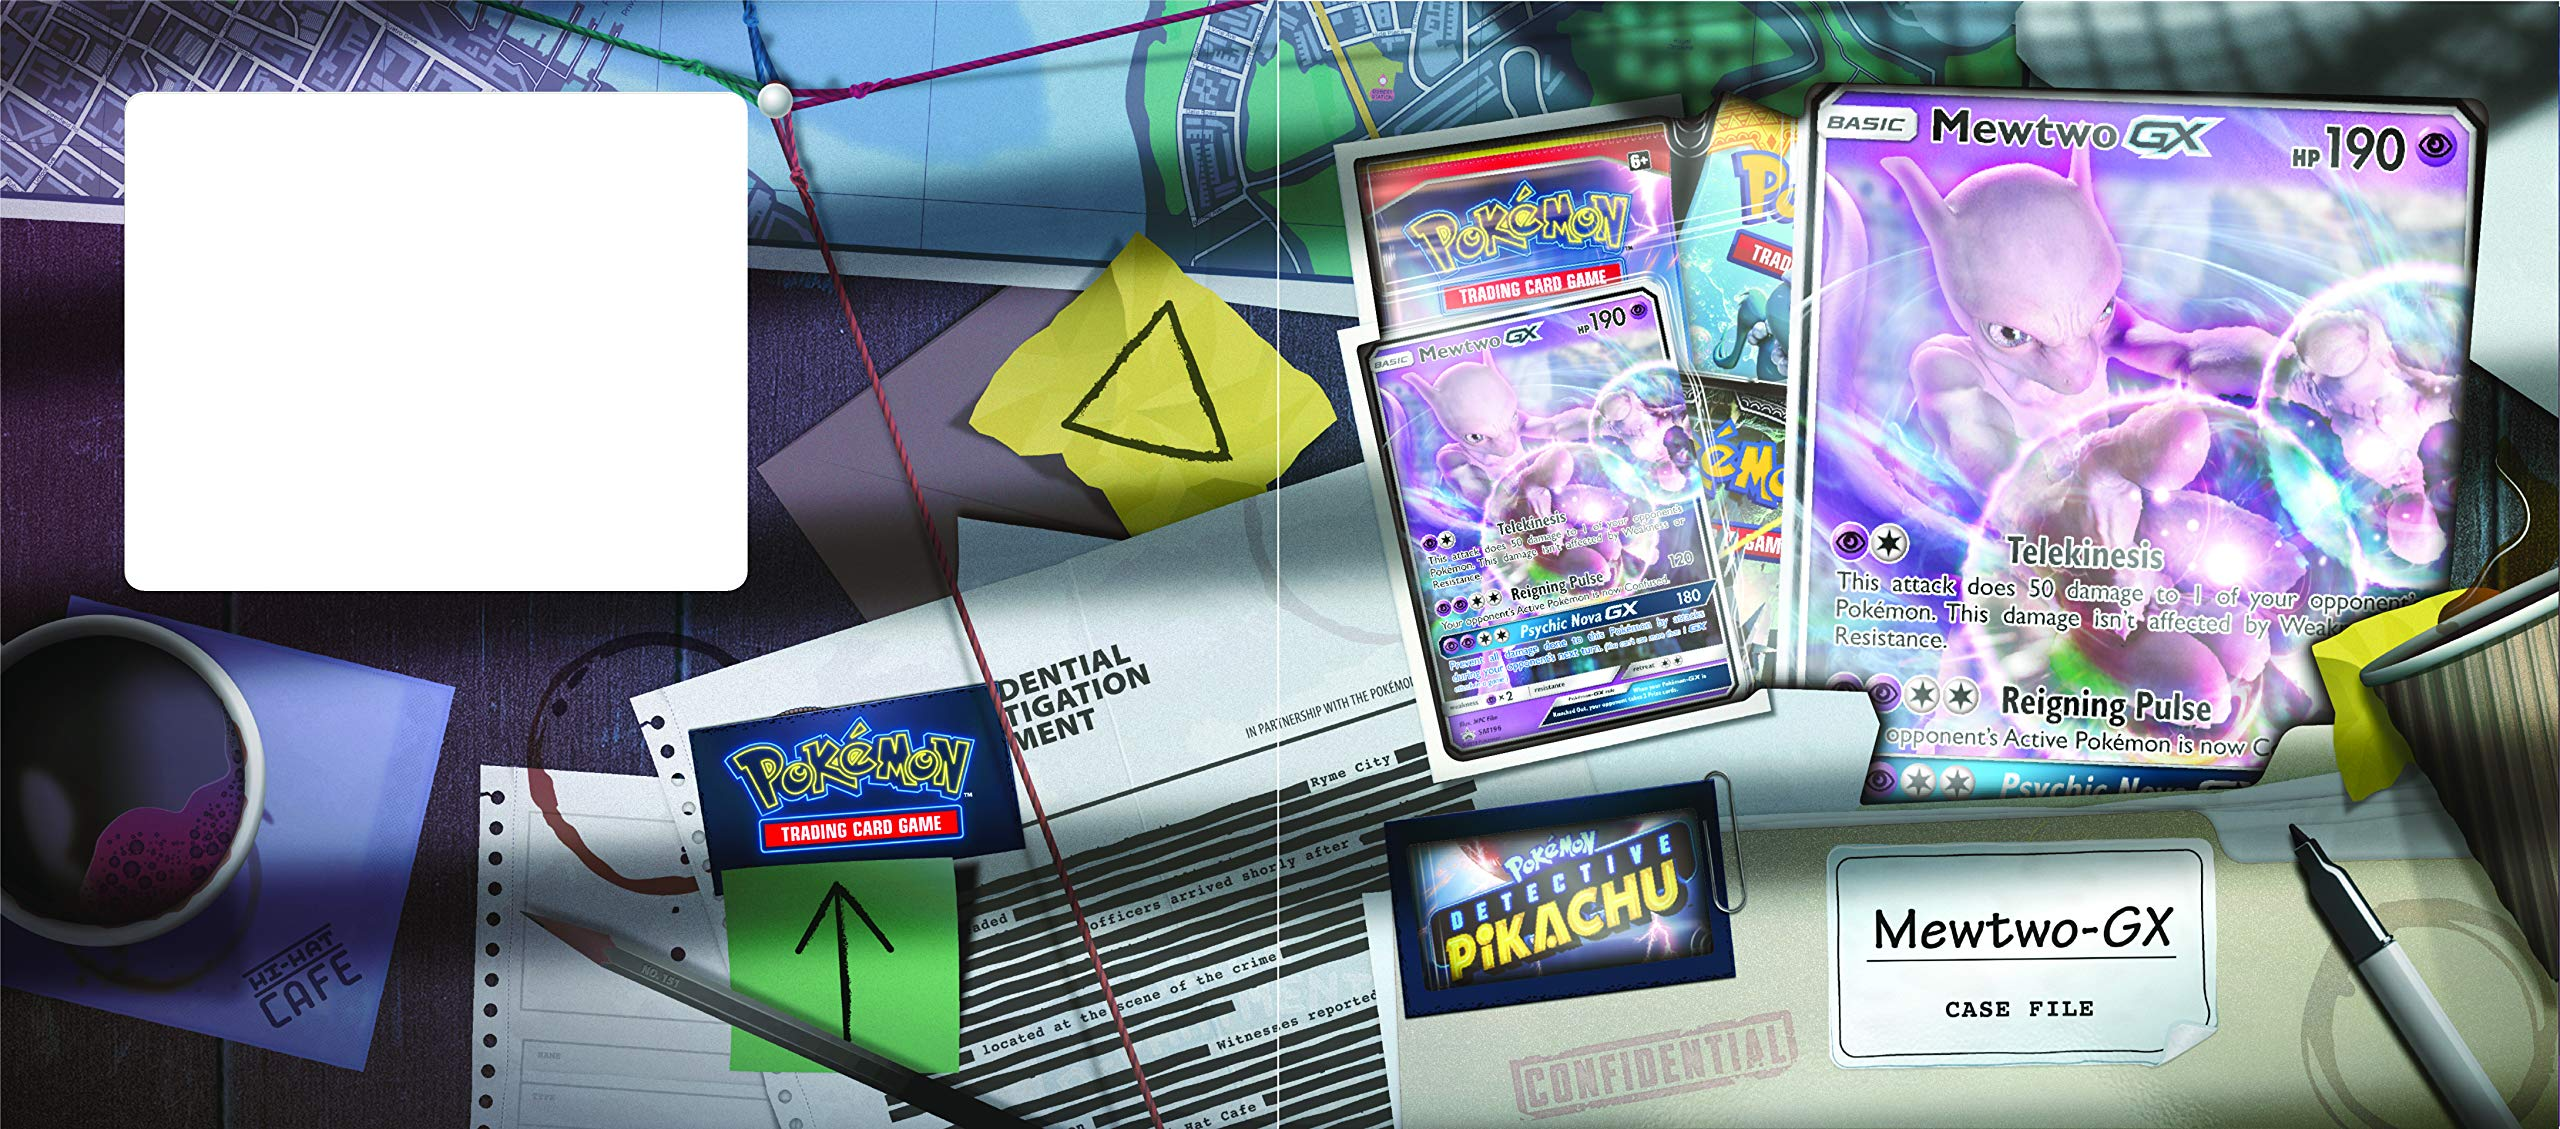 Pokemon TCG: Detective Pikachu Mewtwo-Gx Case File + 6 Booster Pack + A Foil Promo Gx Card + A Oversize Gx Foil Card by Pokemon Cards (Image #2)